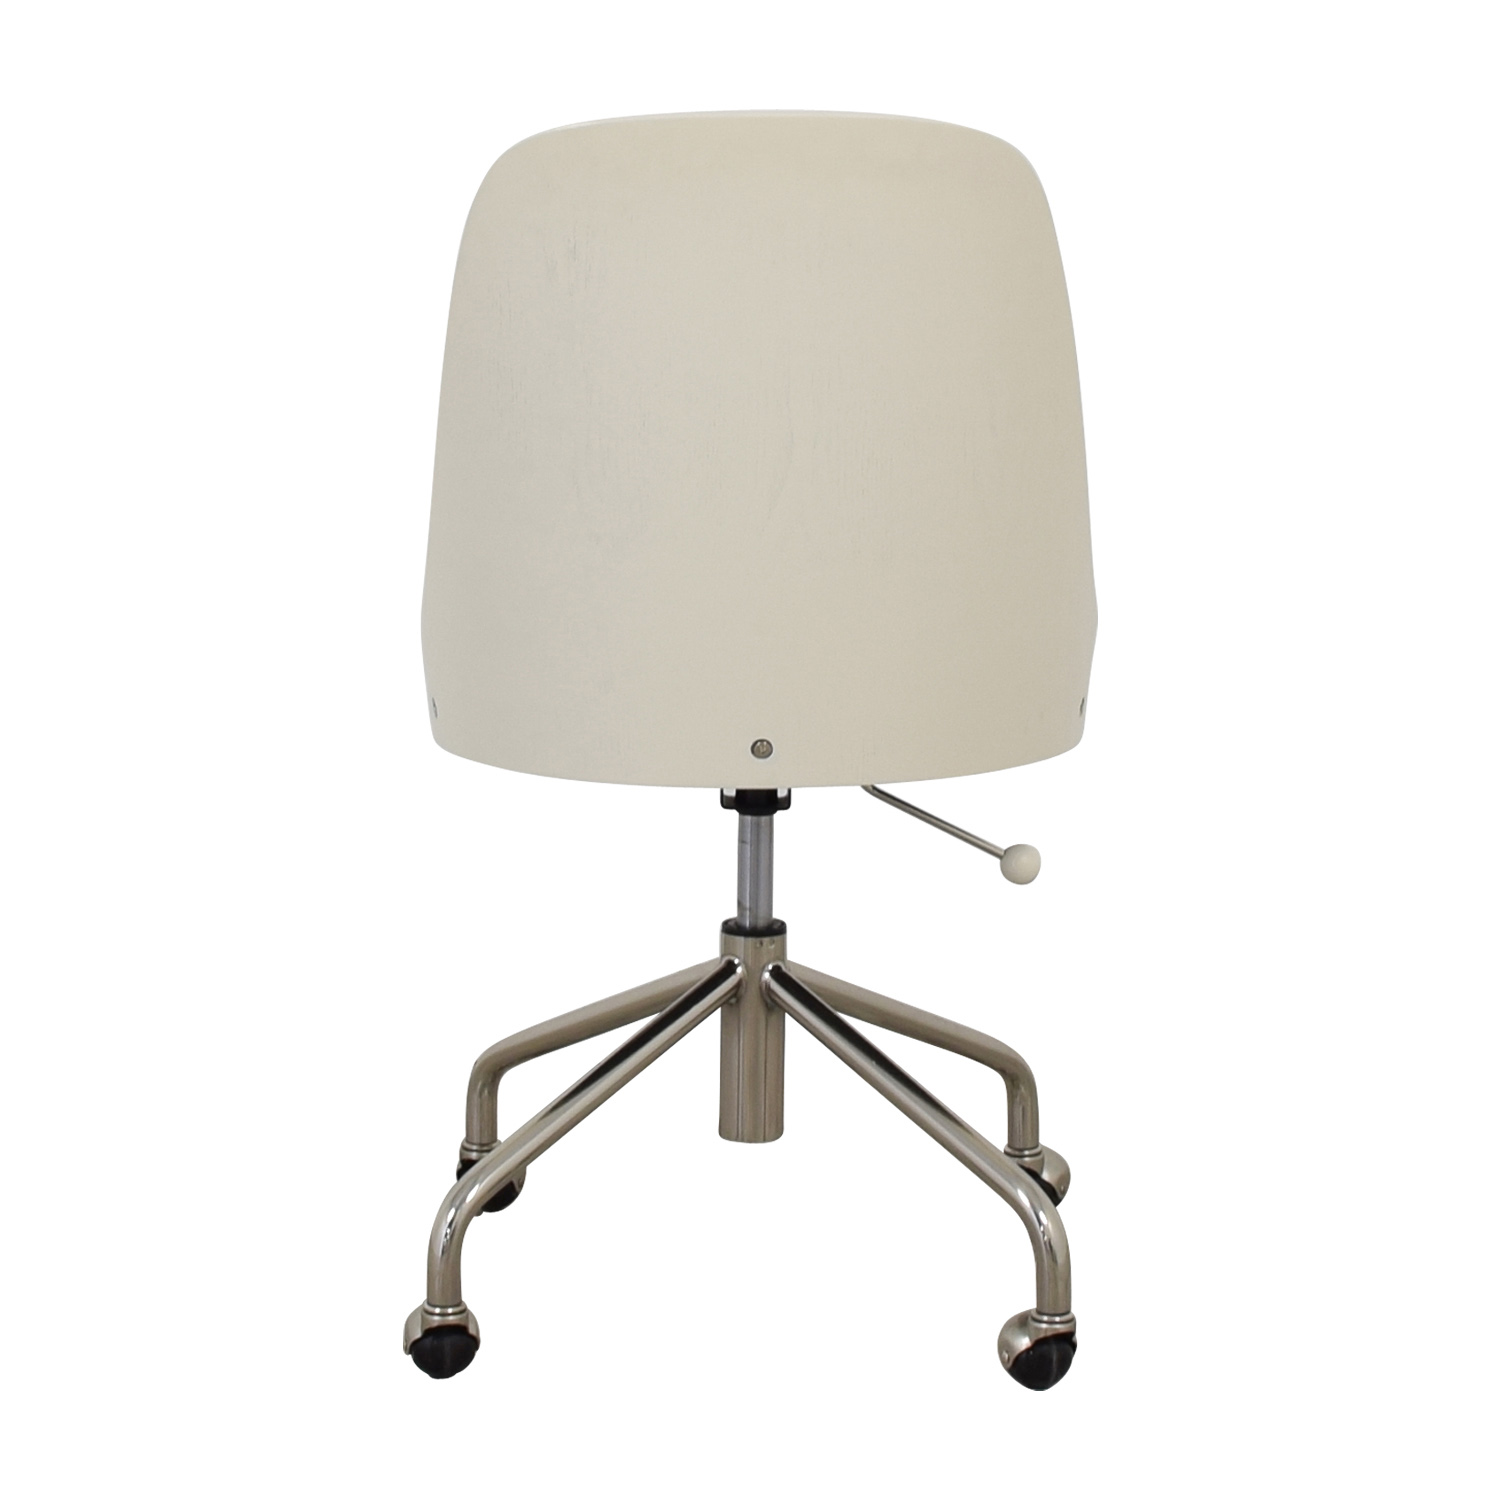 West Elm West Elm Bentwood White and Grey Office Chair price